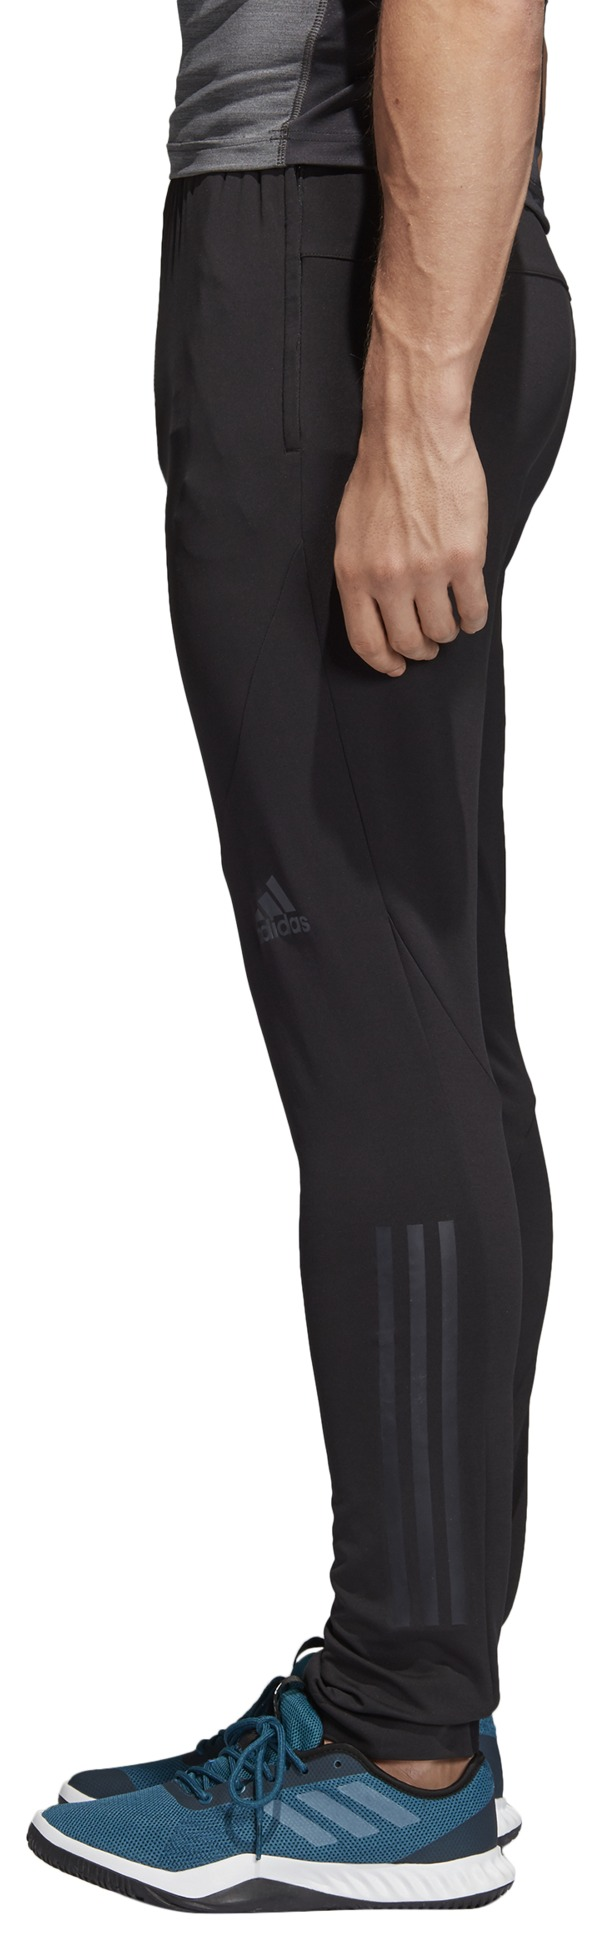 timeless design 23834 f3d37 adidas WORKOUT PANT CLIMACOOL KNIT | sportisimo.com